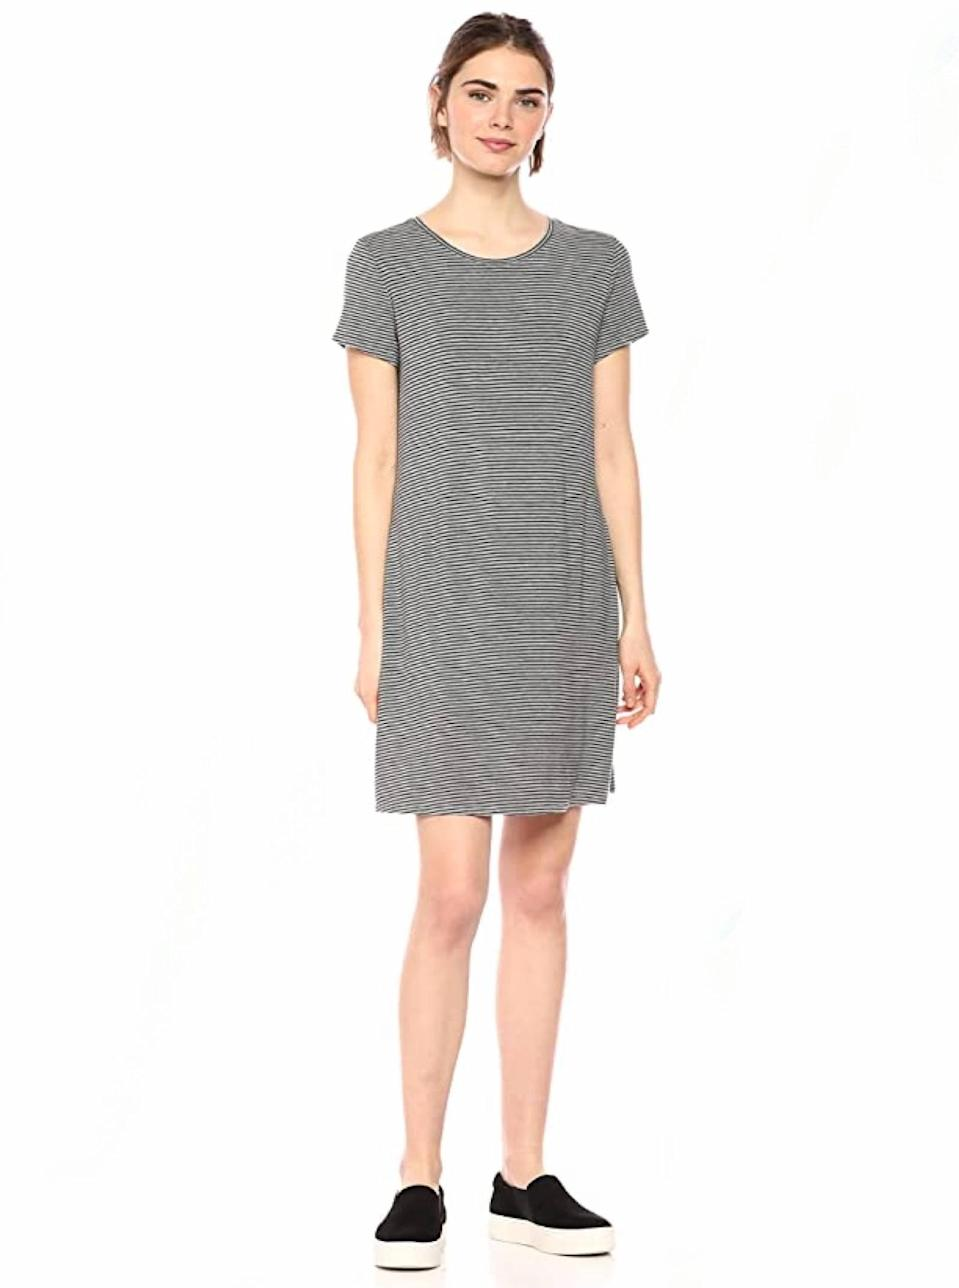 """If you don't have a roomy t-shirt dress that's cute enough for Zoom meetings and cozy enough for cat naps, what're you doing? $21, Amazon. <a href=""""https://www.amazon.com/Amazon-Essentials-Womens-Short-Sleeve-Scoopneck/dp/B07JP44KVG/"""" rel=""""nofollow noopener"""" target=""""_blank"""" data-ylk=""""slk:Get it now!"""" class=""""link rapid-noclick-resp"""">Get it now!</a>"""